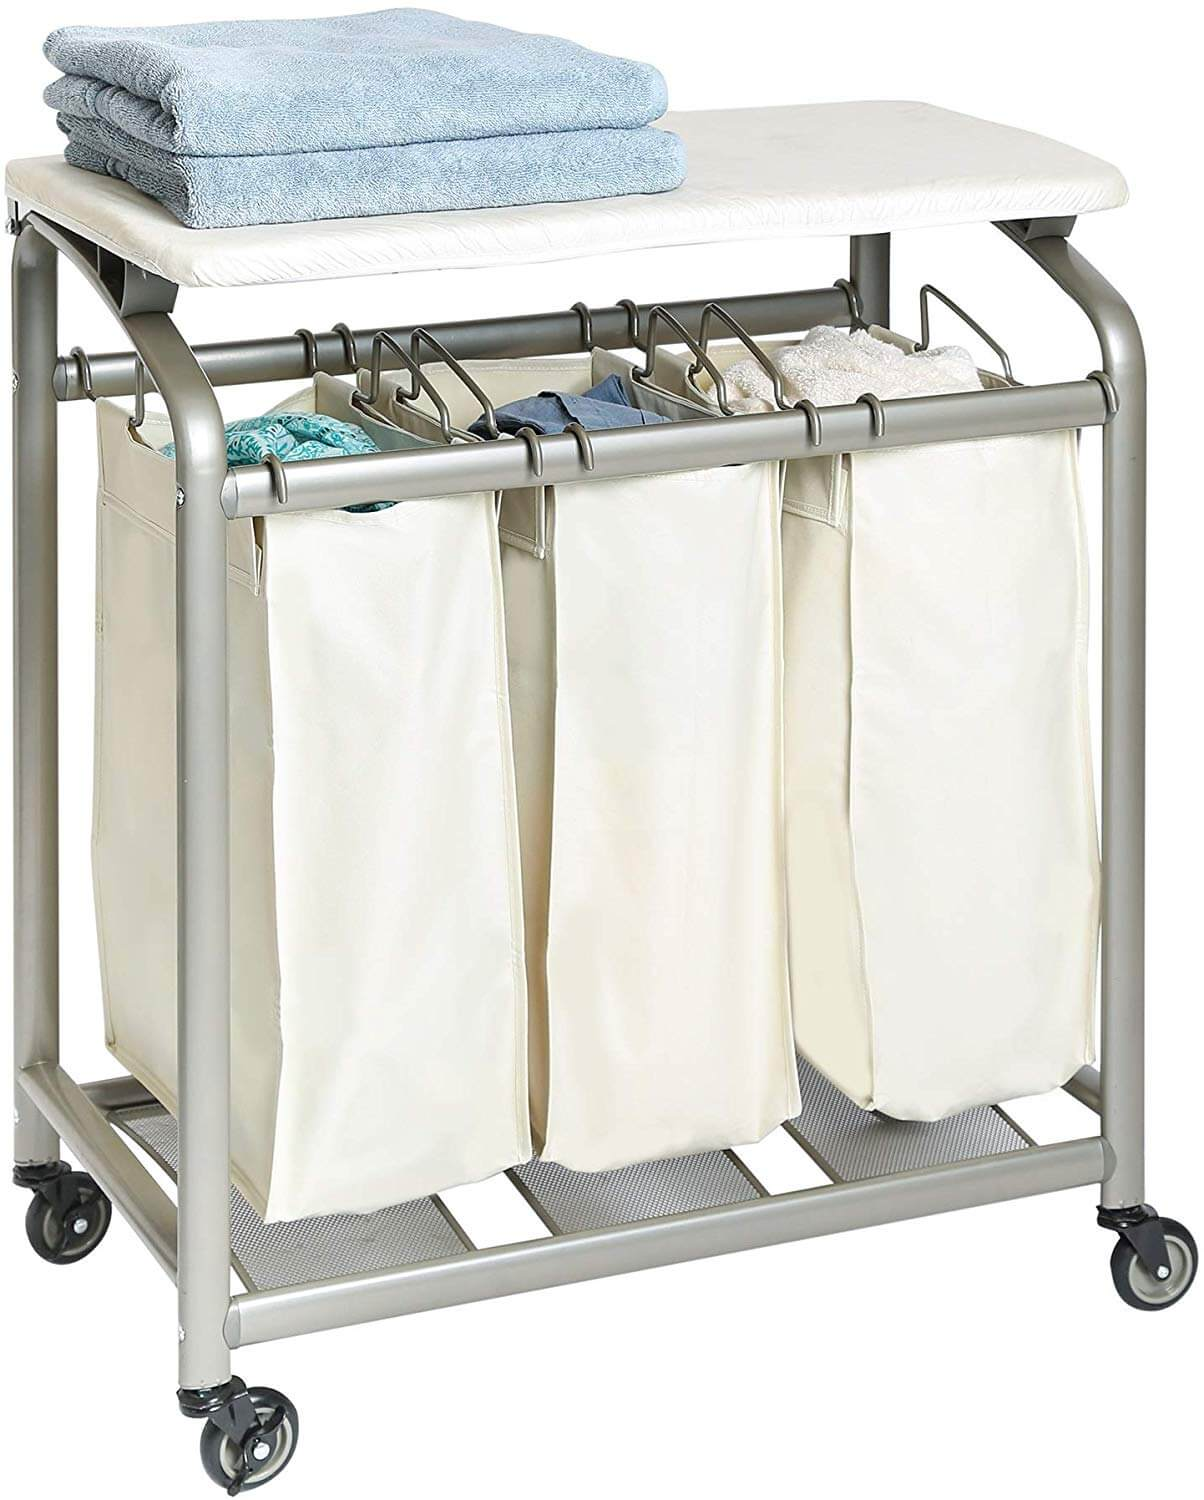 laundry organization cart as an idea of how to get organized